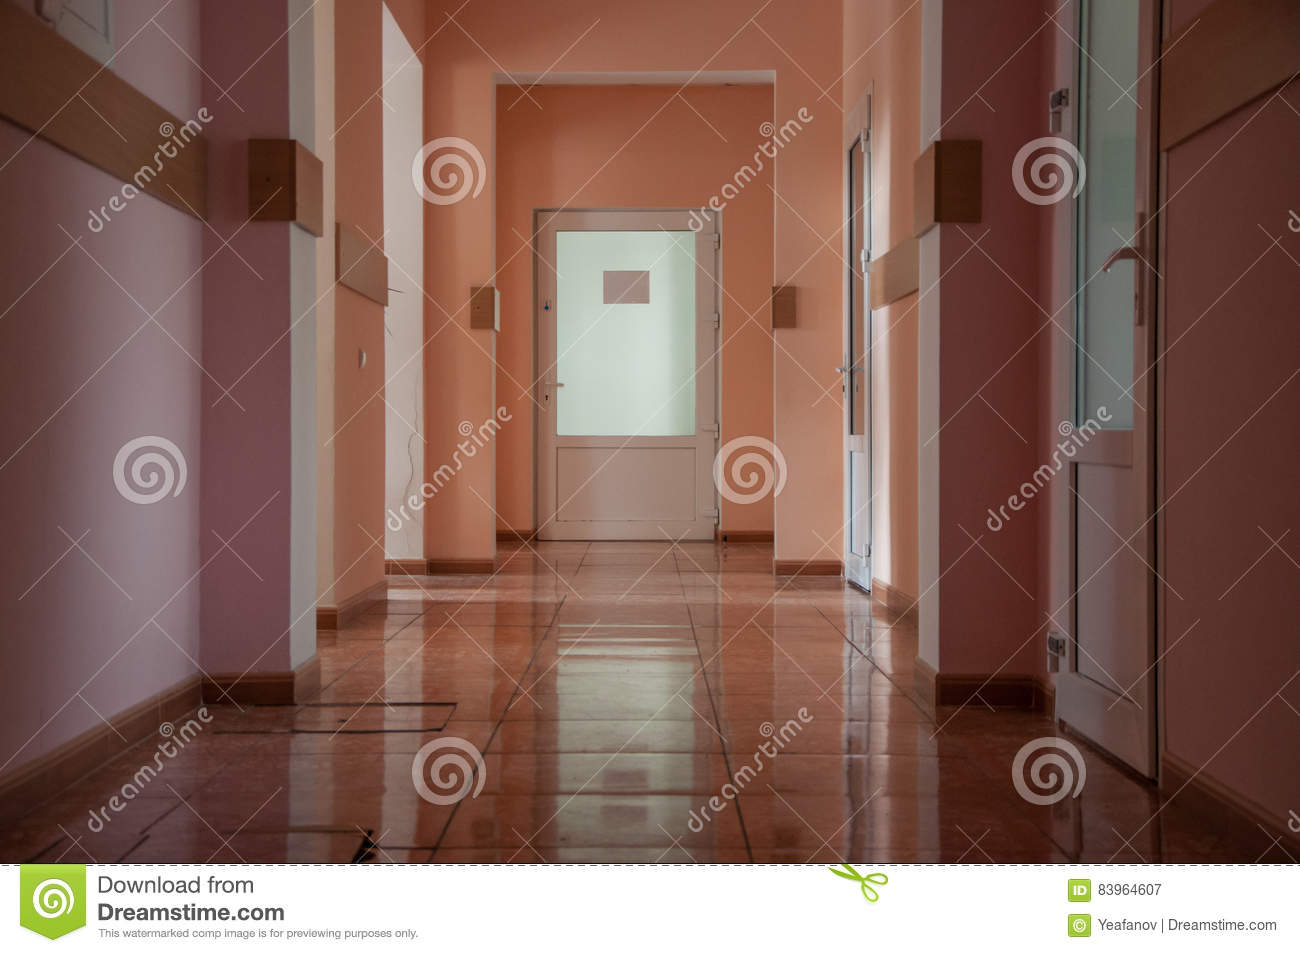 Hallway in a hospital at warm colors